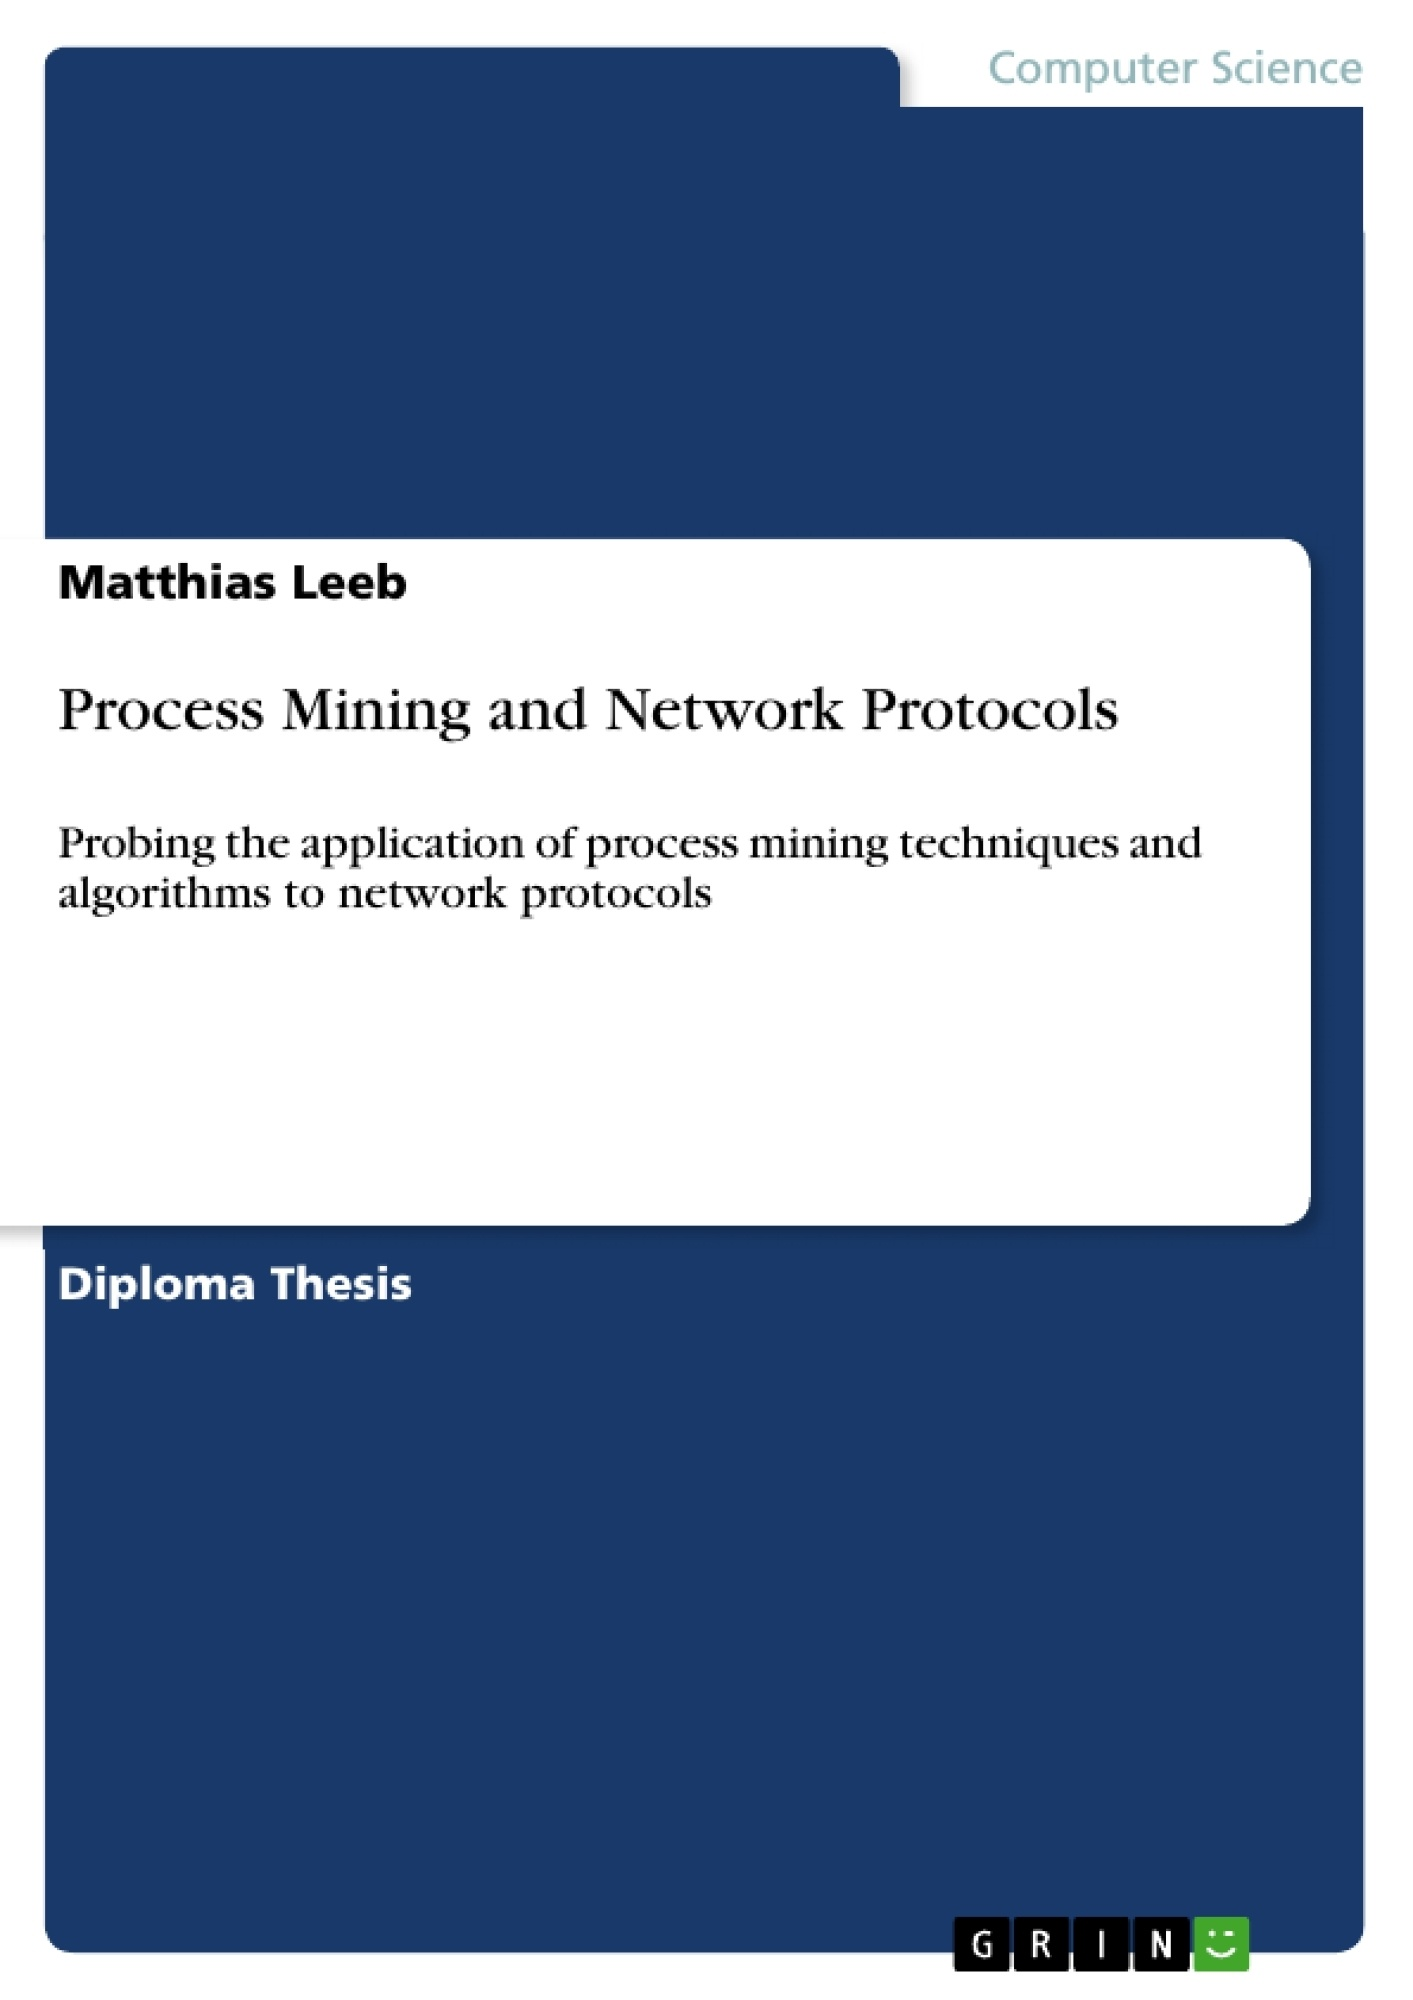 GRIN - Process Mining and Network Protocols